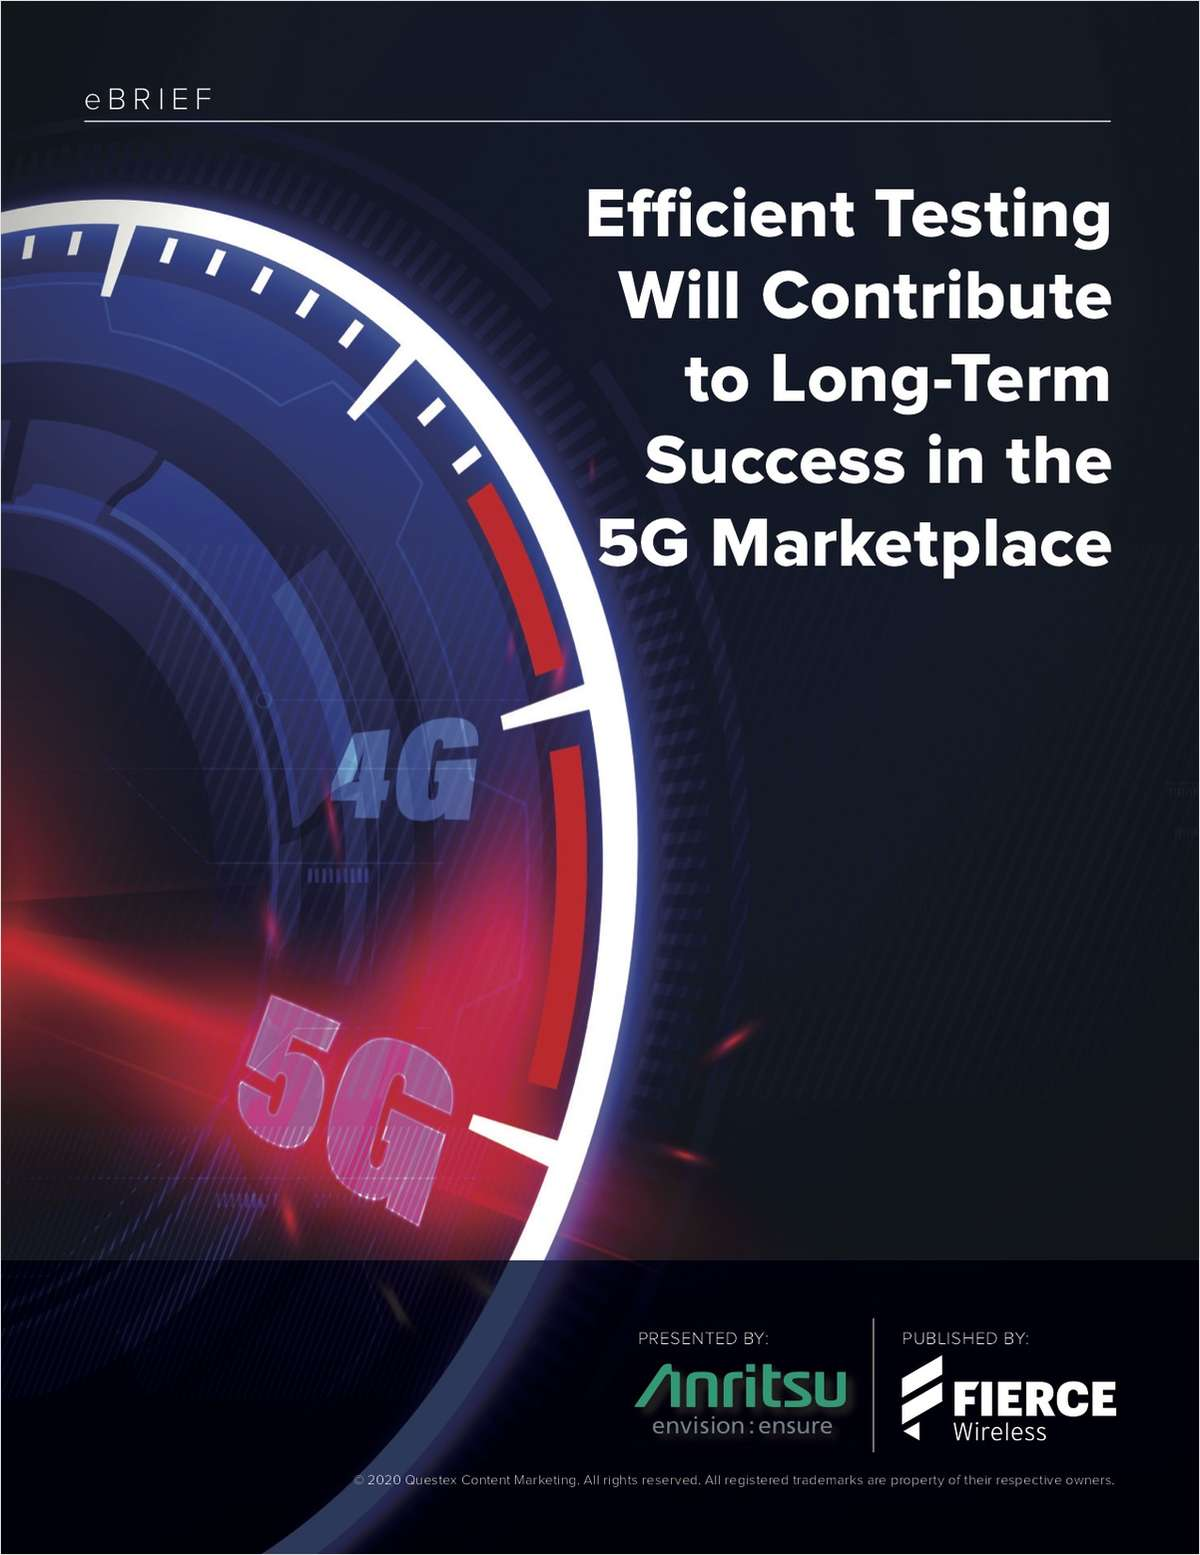 Efficient Testing Will Contribute to Long-Term Success in the 5G Marketplace